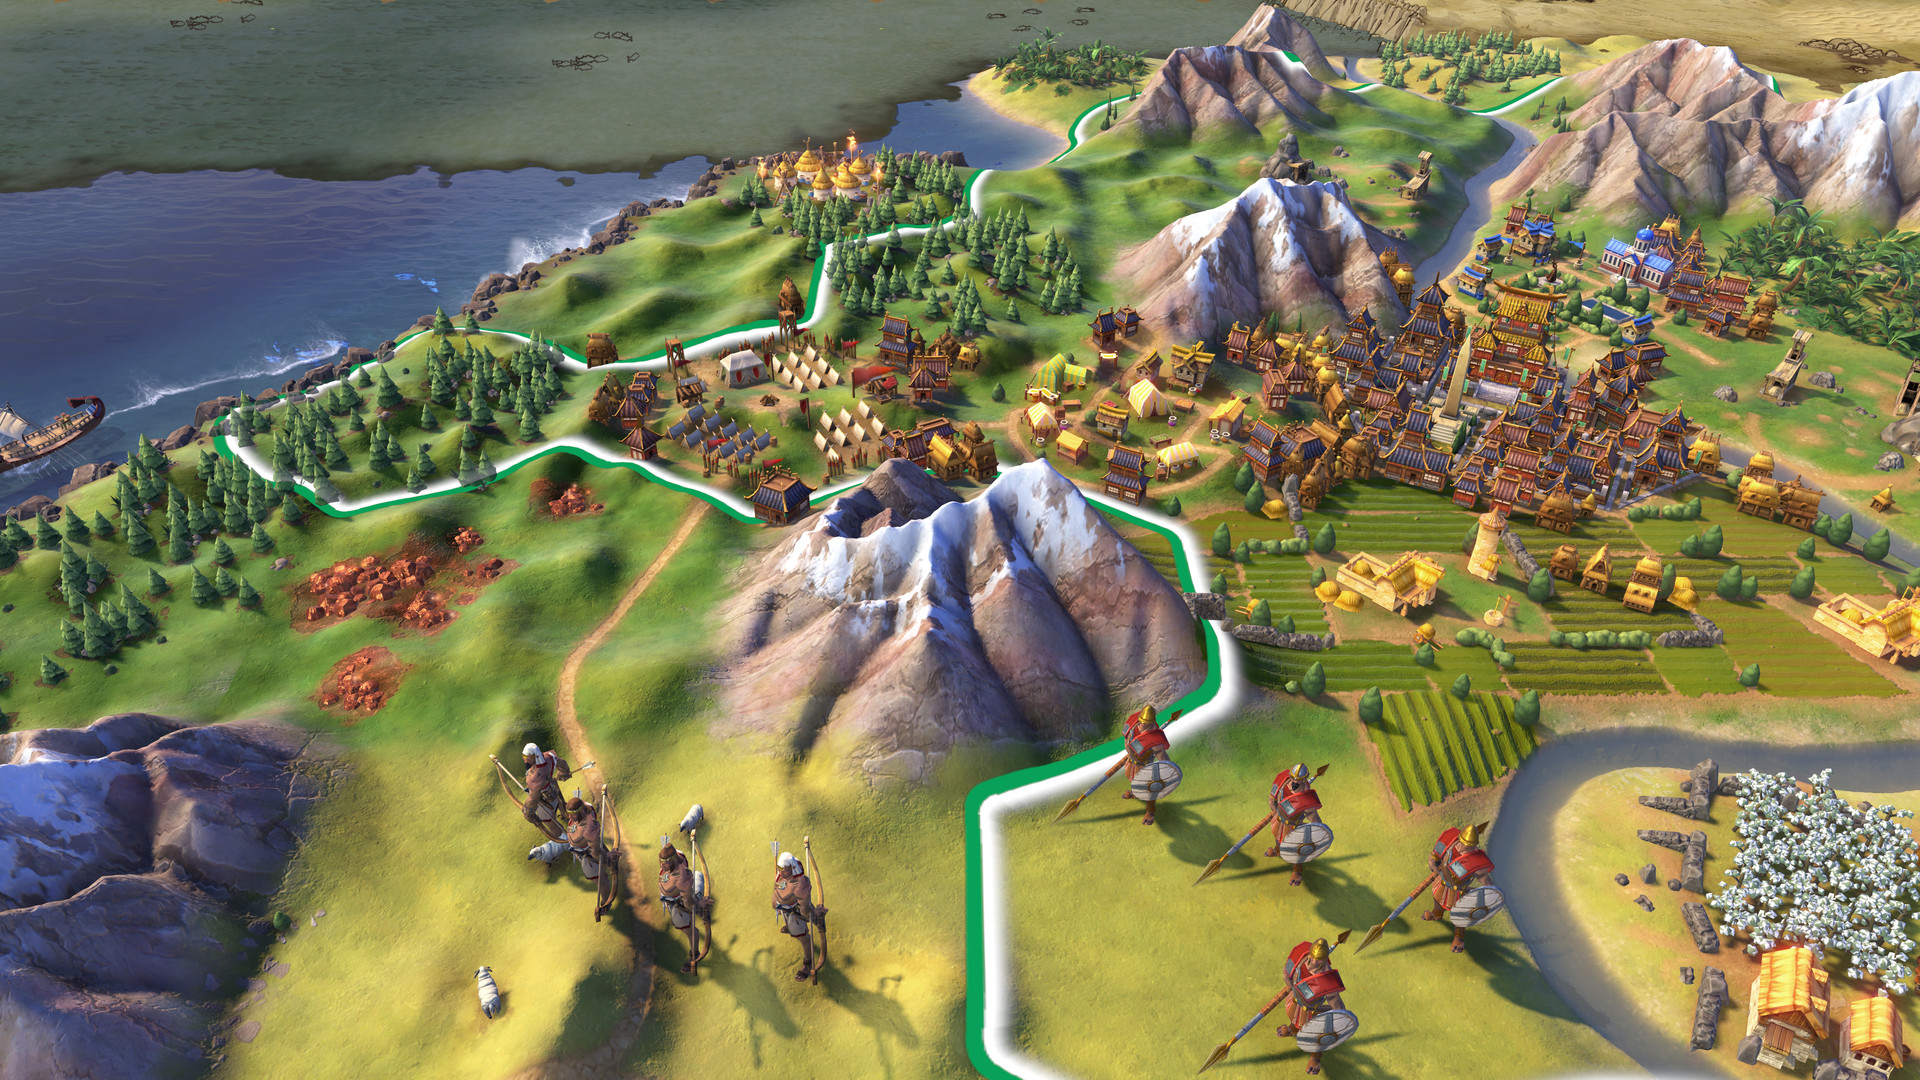 Civ 6 Art Style, Map, and UI Changes